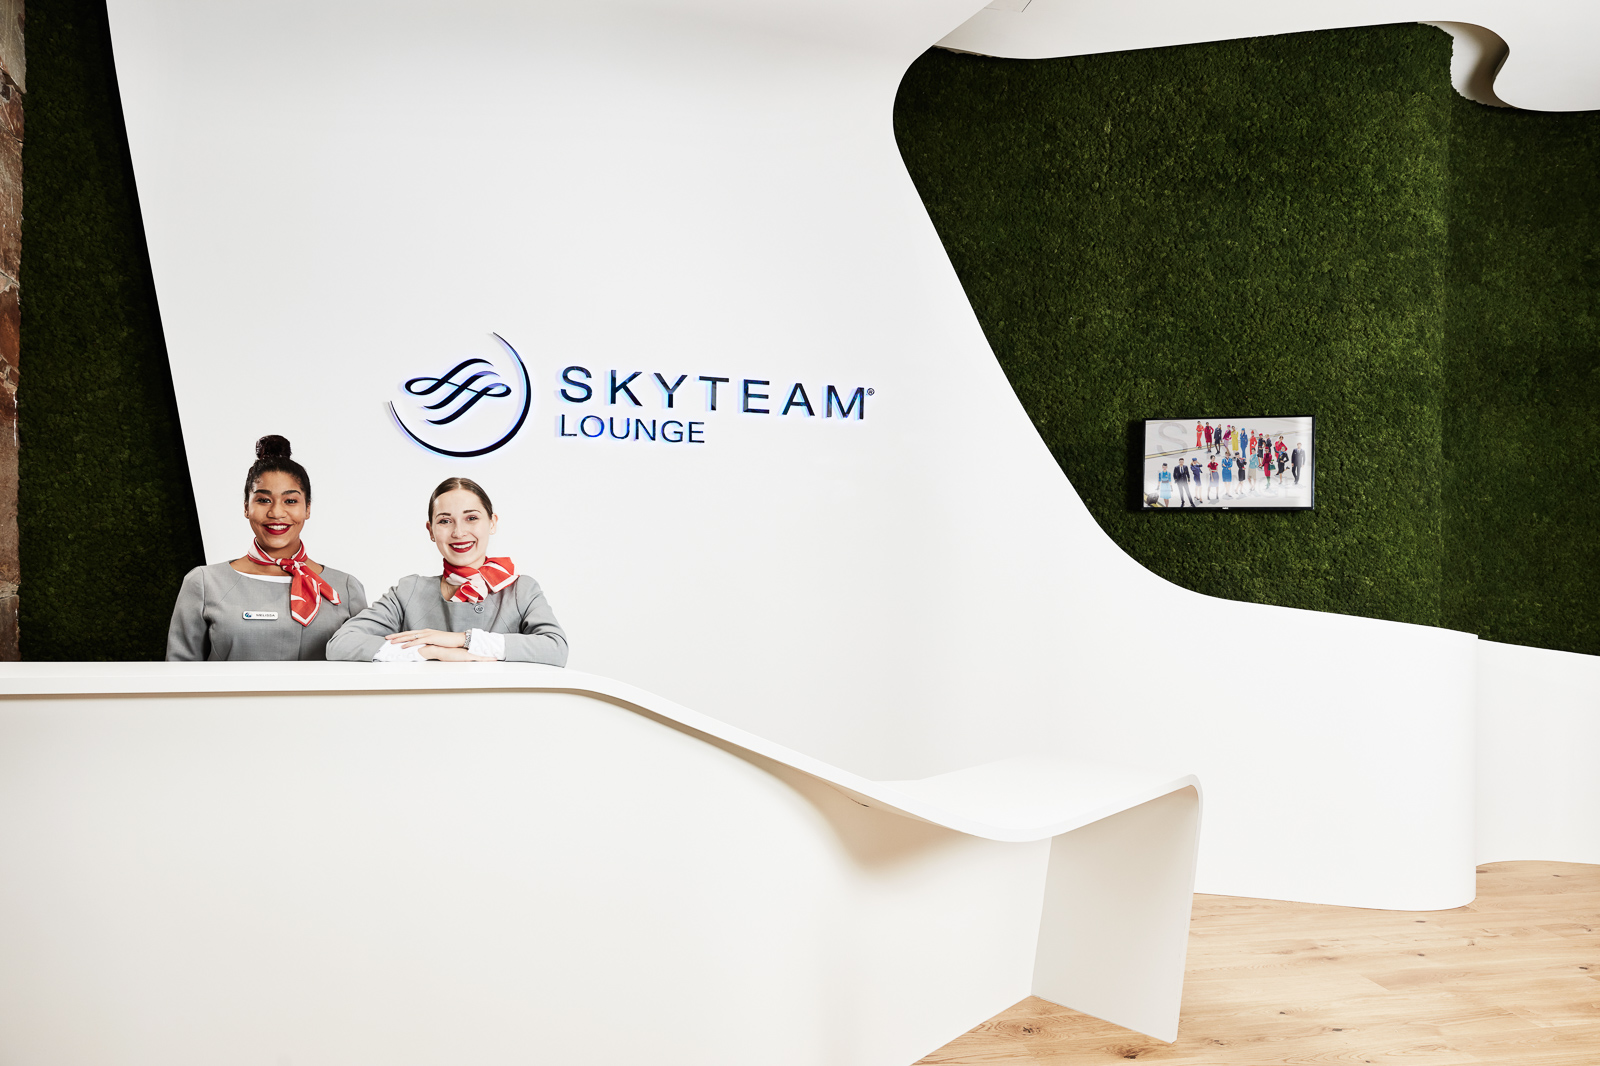 SkyTeam elevates ground experience with new lounges in Santiago and Istanbul